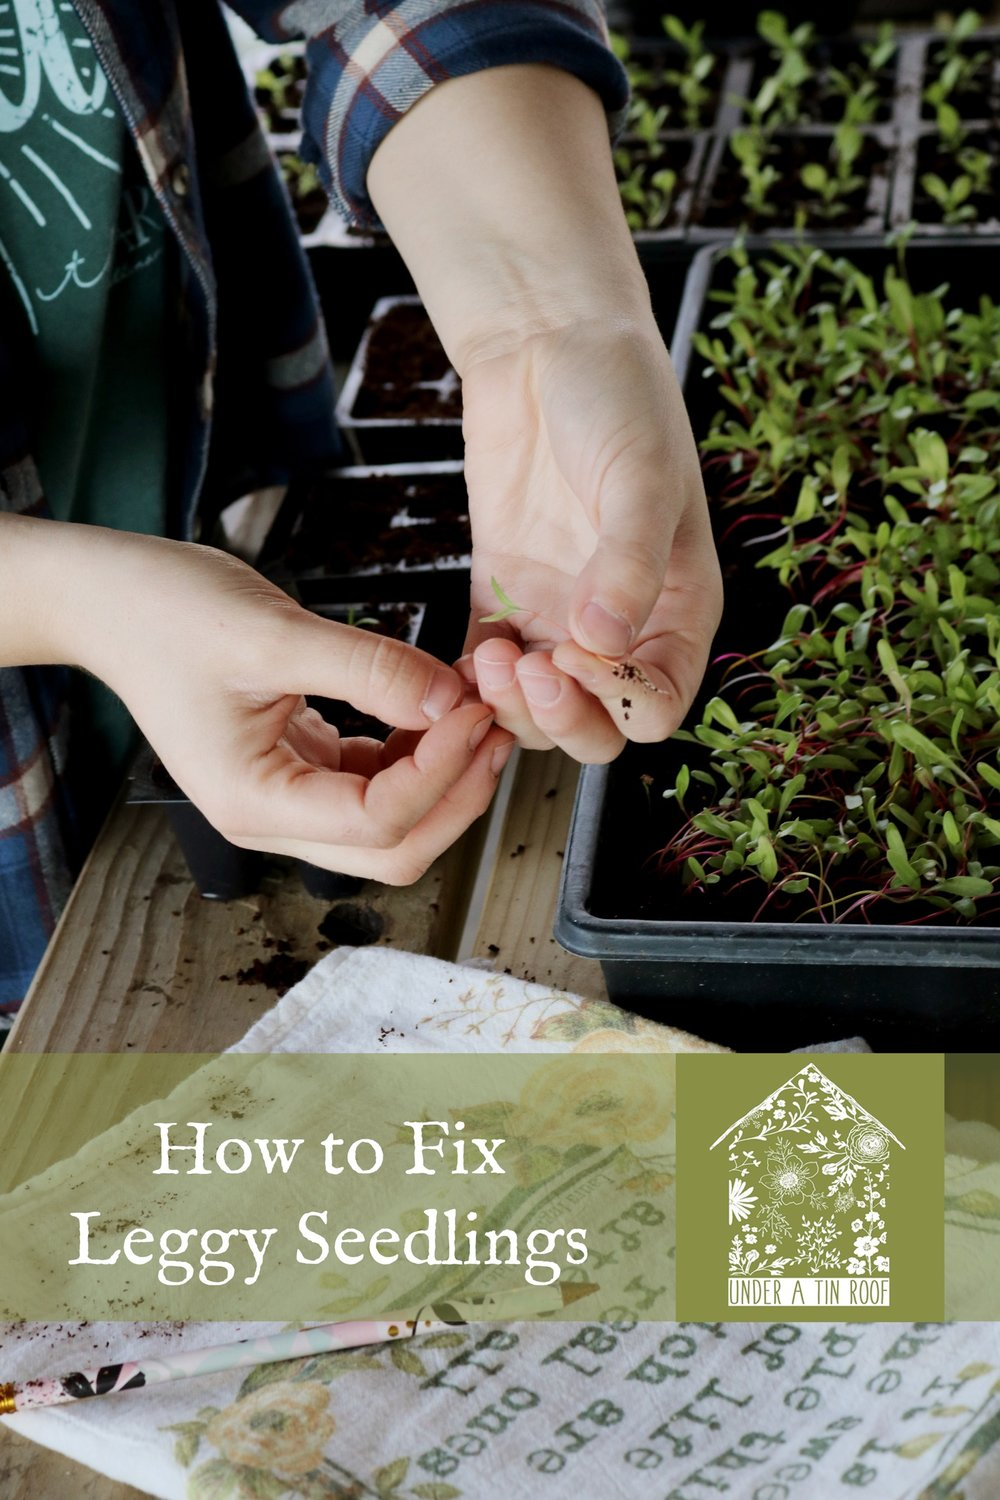 How to Fix Leggy Seedlings or The Art of Transplanting - Under A Tin Roof Blog